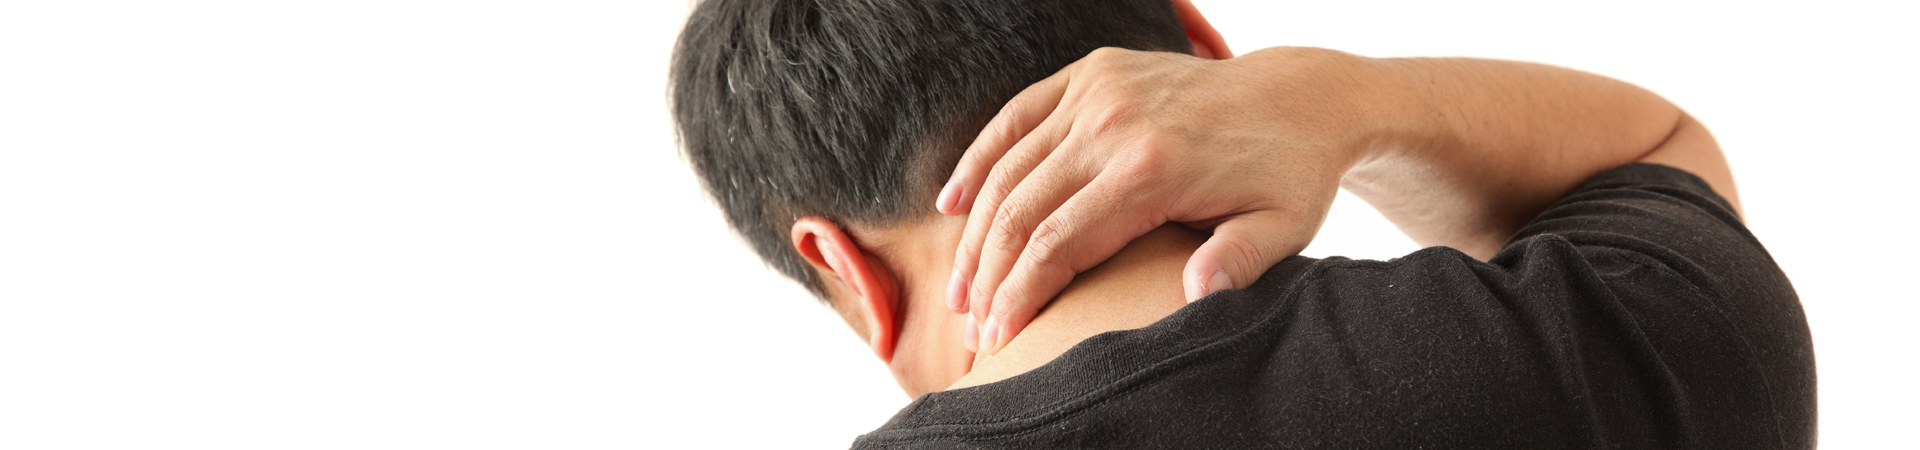 Deep tissue massage for Neck pain